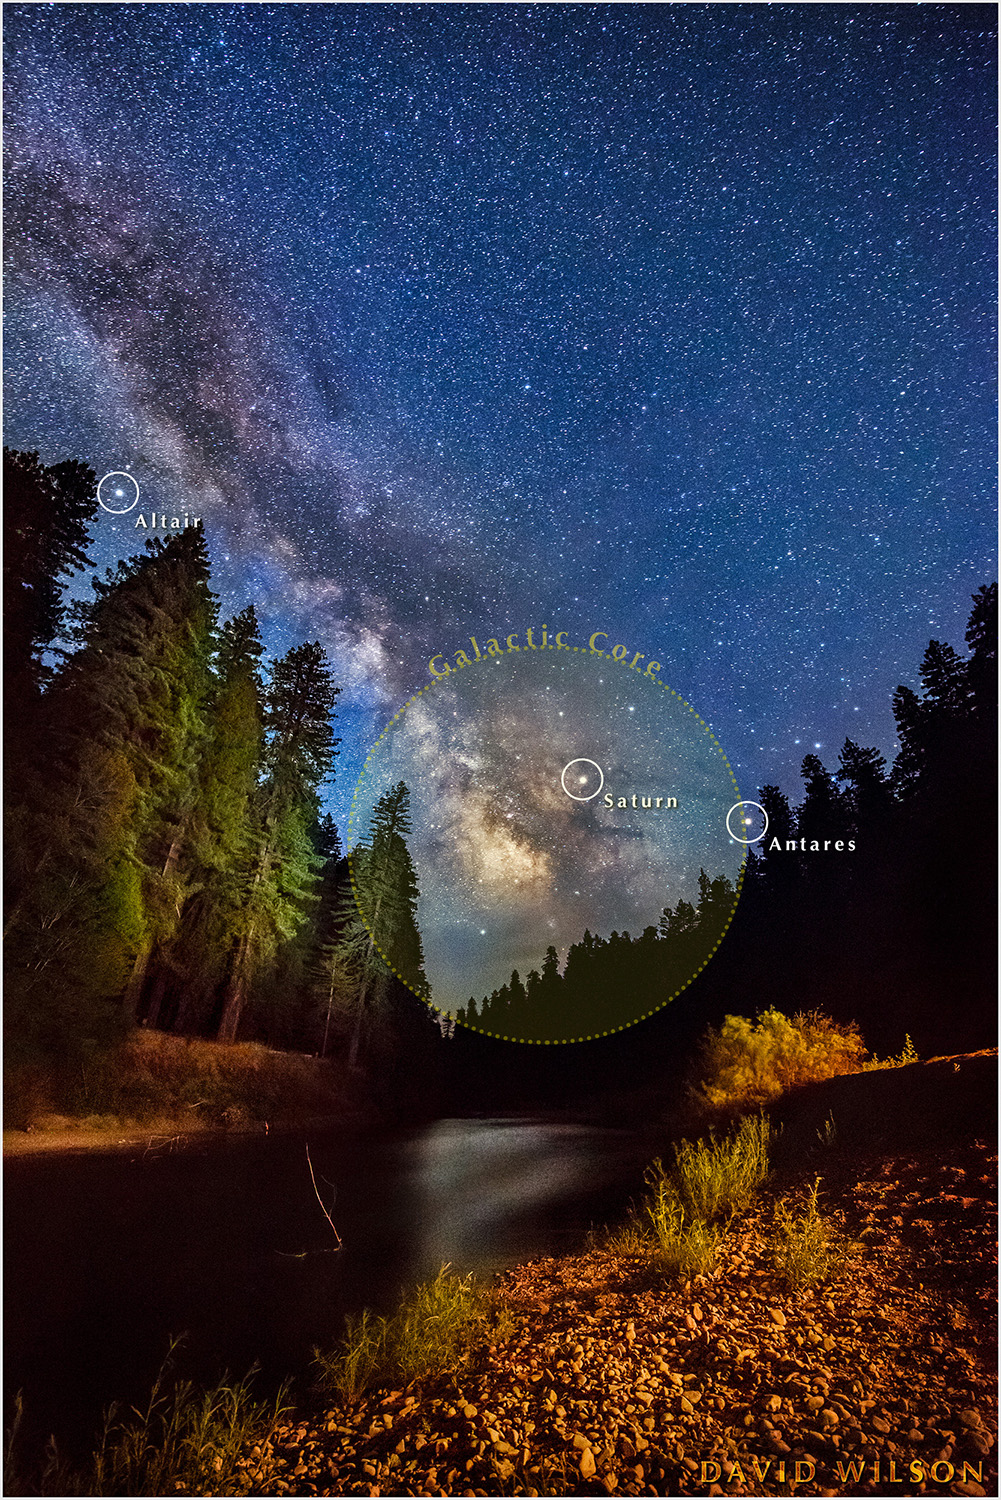 Nighttime scene with Milky Way, as seen from the banks of the Eel River at the California Federation of Women's Clubs Grove in Humboldt Redwoods State Park, California. June 2017. Photo by David Wilson.